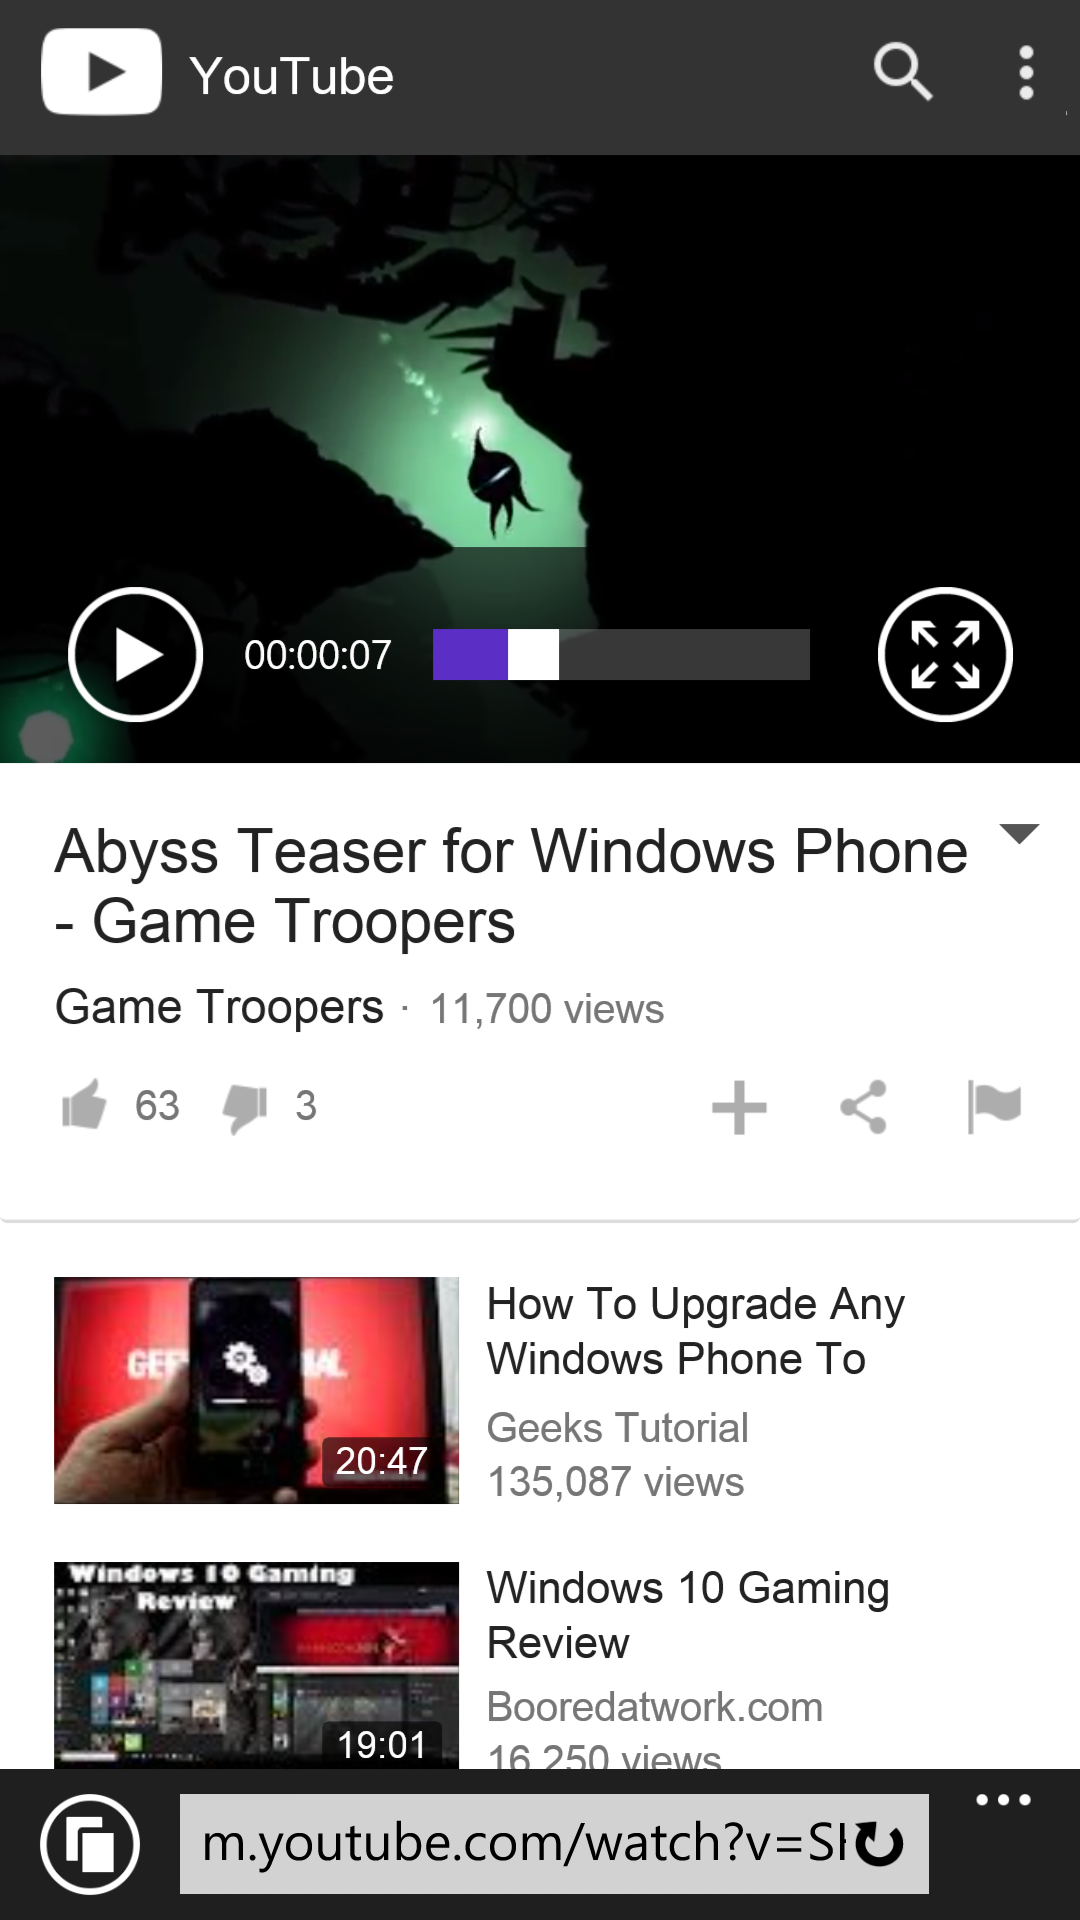 Youtube S Updated Mobile Site Works Very Well On Windows